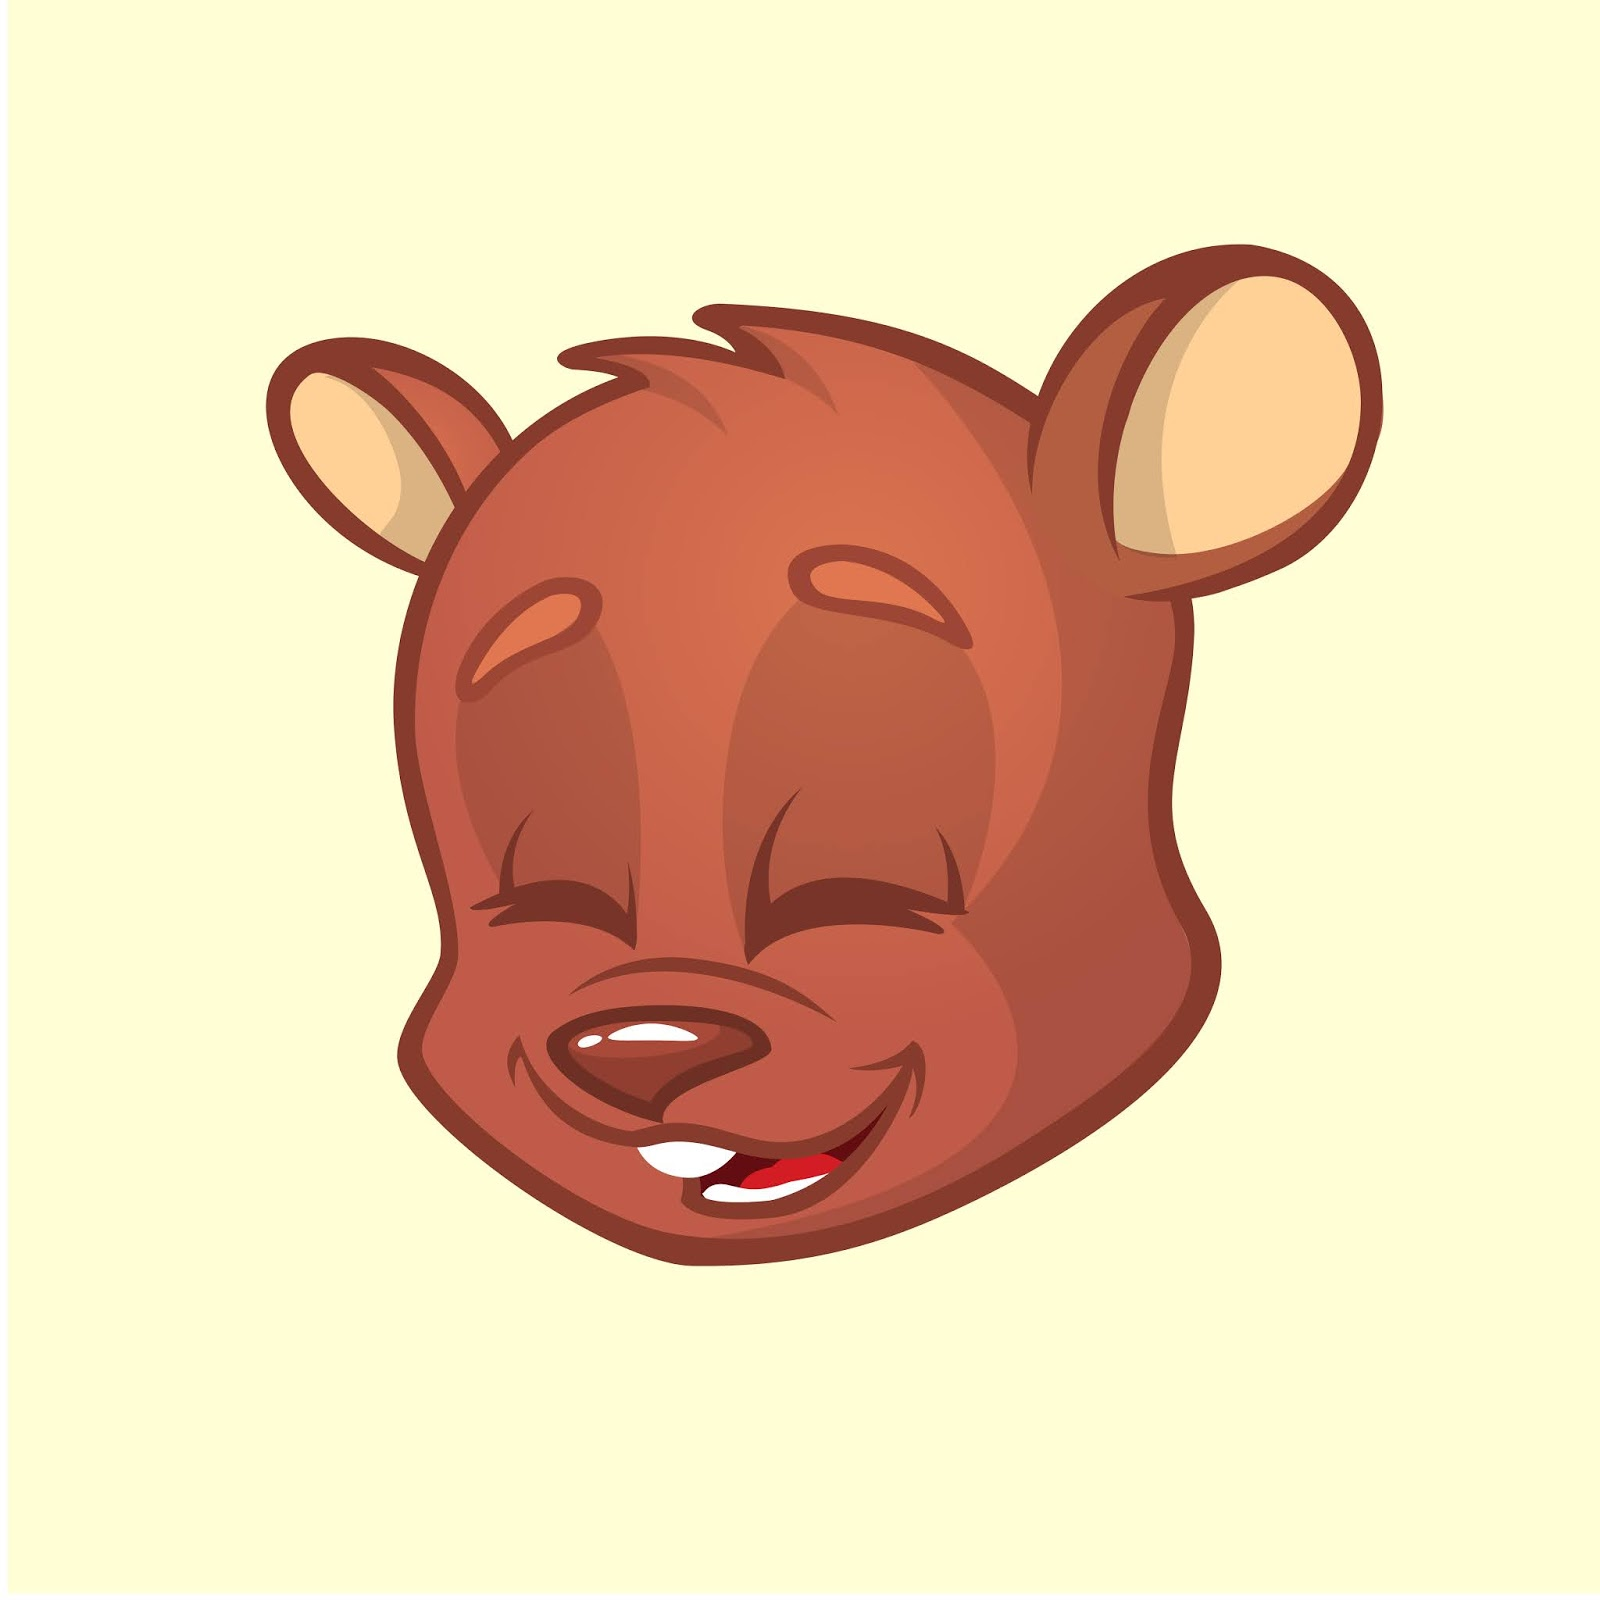 Bear Free Download Vector CDR, AI, EPS and PNG Formats